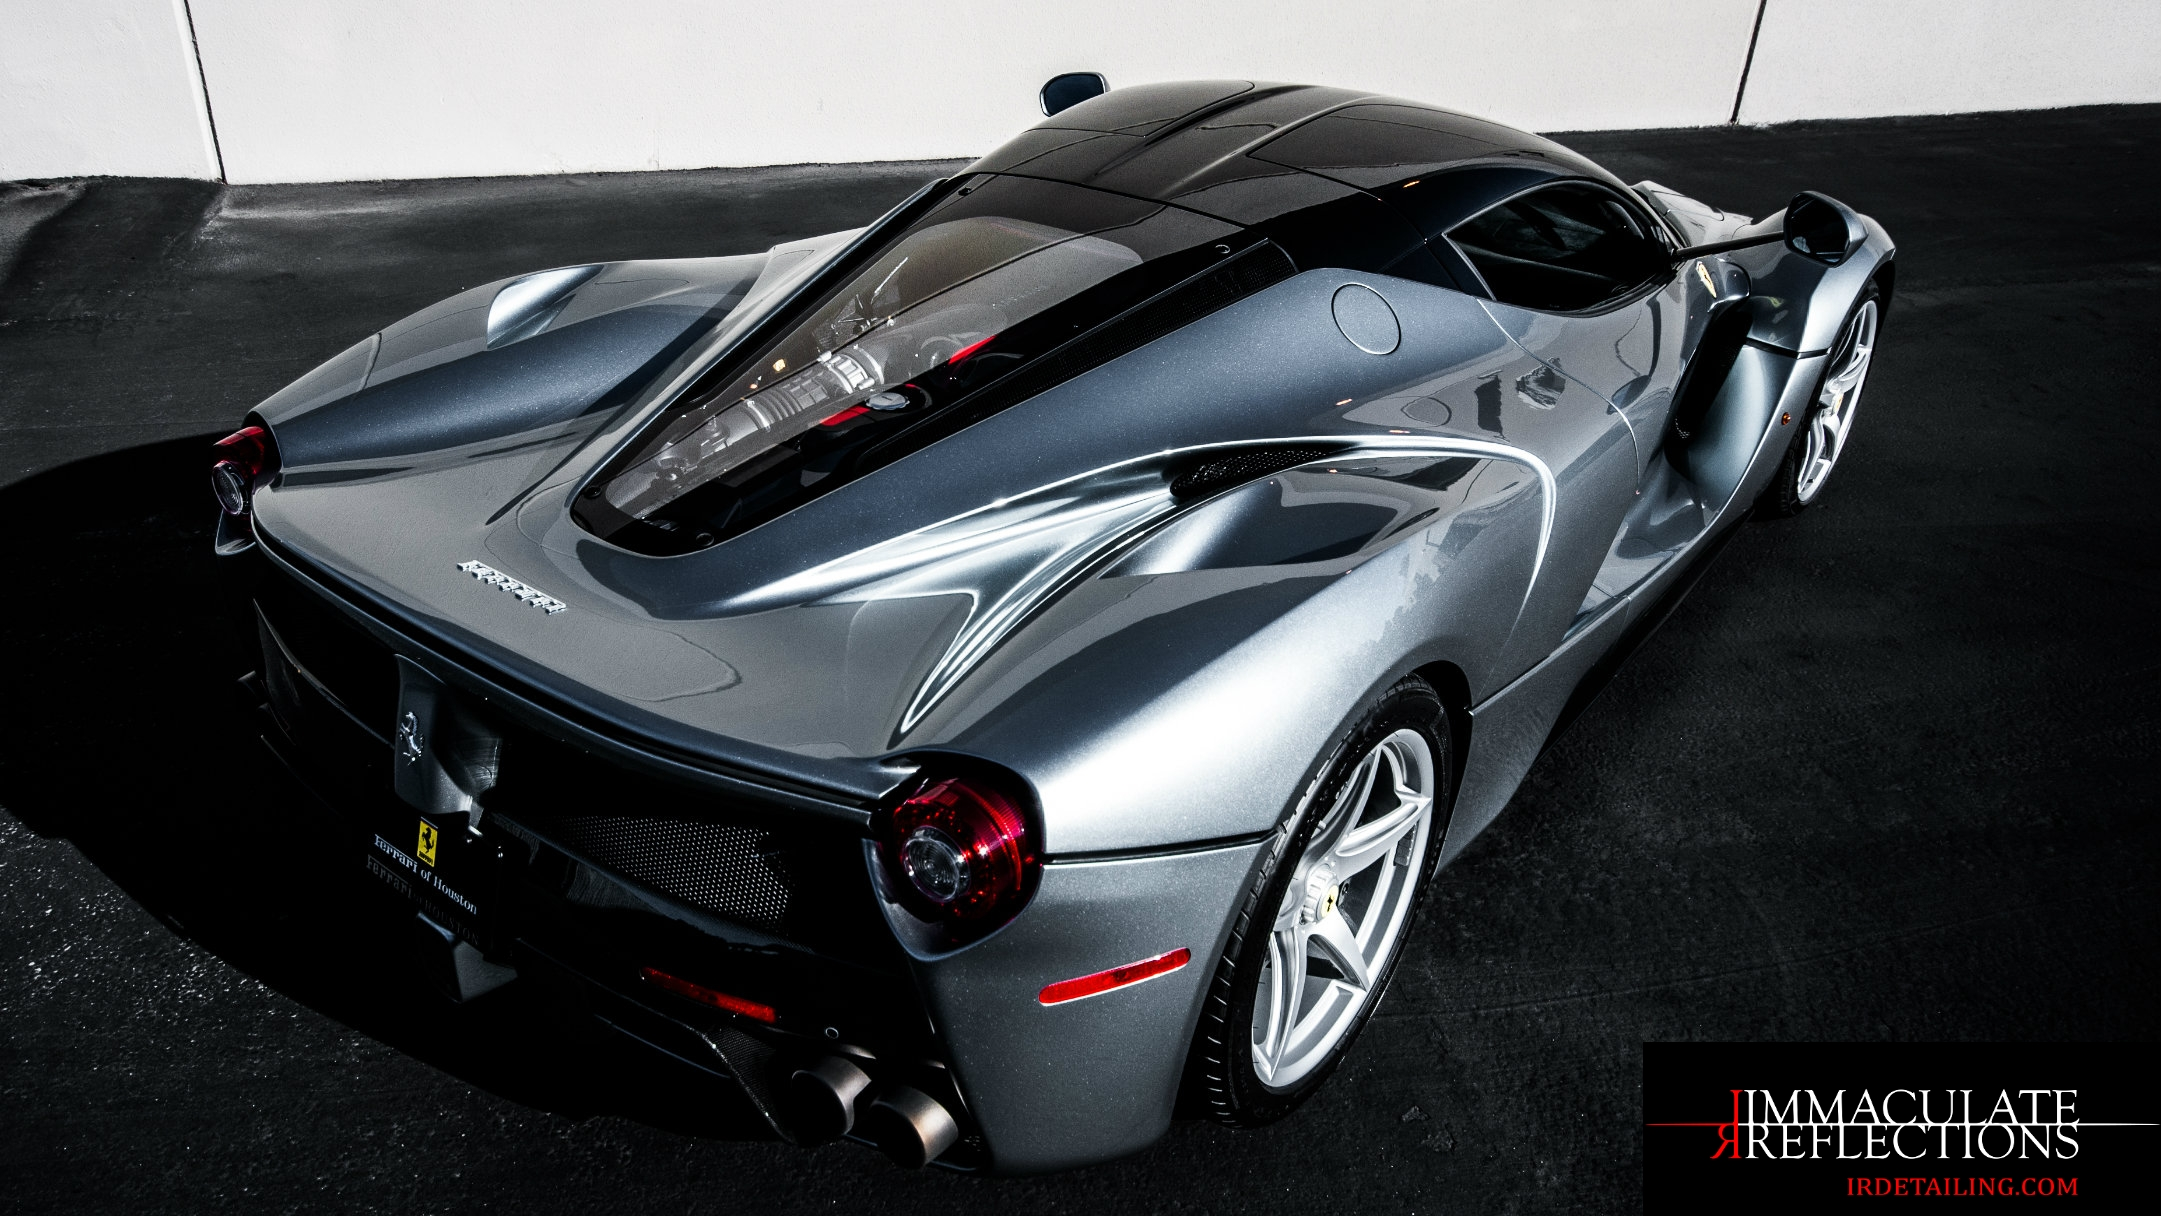 This Ferrari LaFerrari was fully paint corrected and ceramic coated to sparkling perfection by Immaculate Reflections in East S.F. Bay Area.